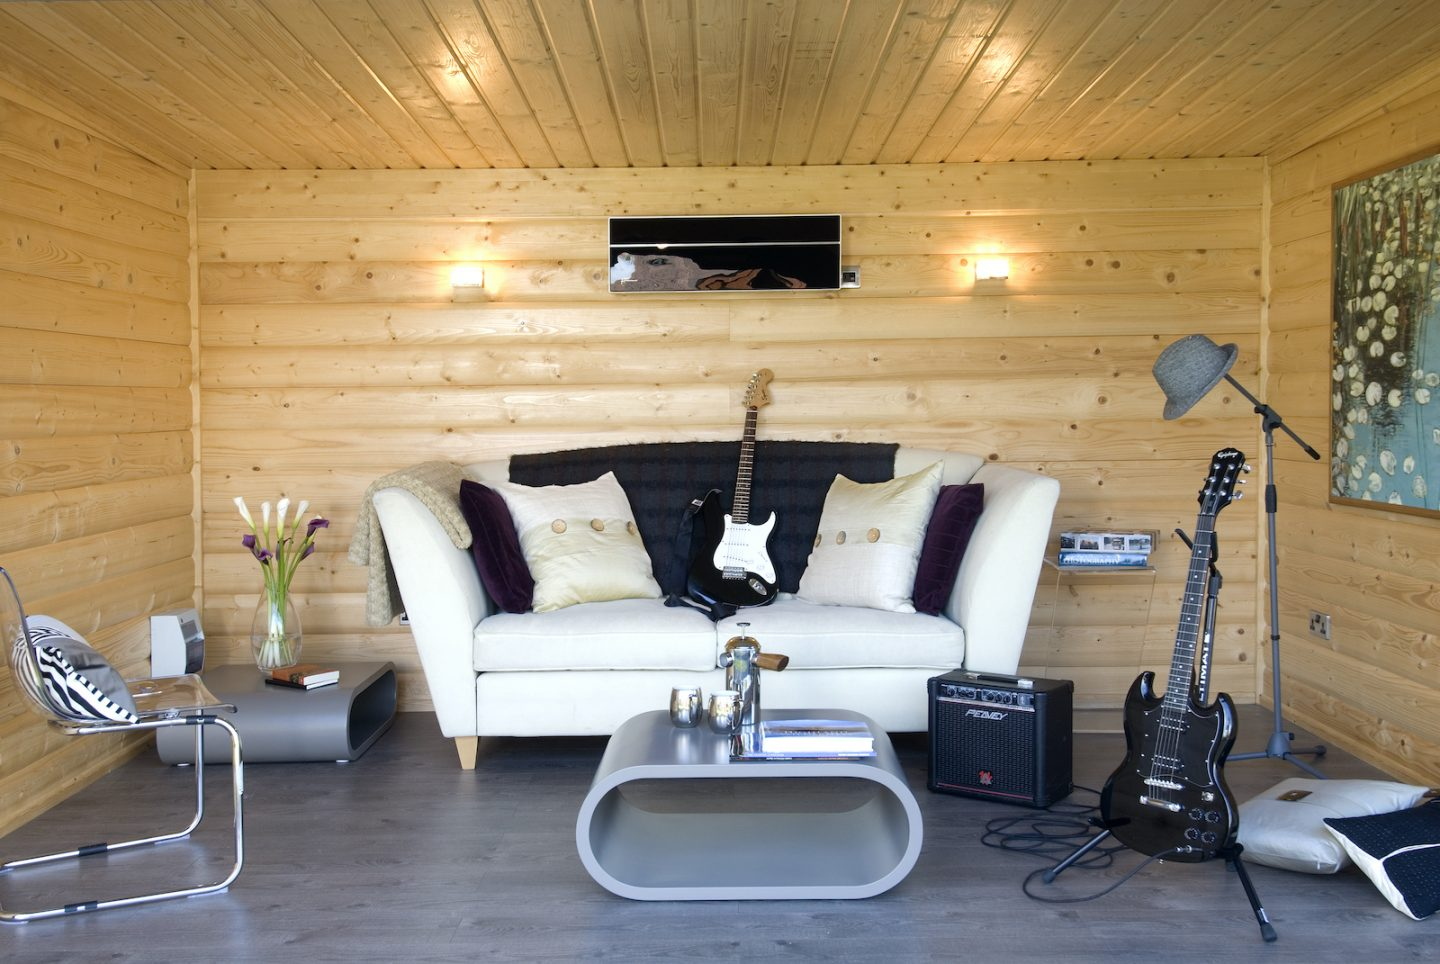 Great garden room idea of a music room showing white sofa and guitars